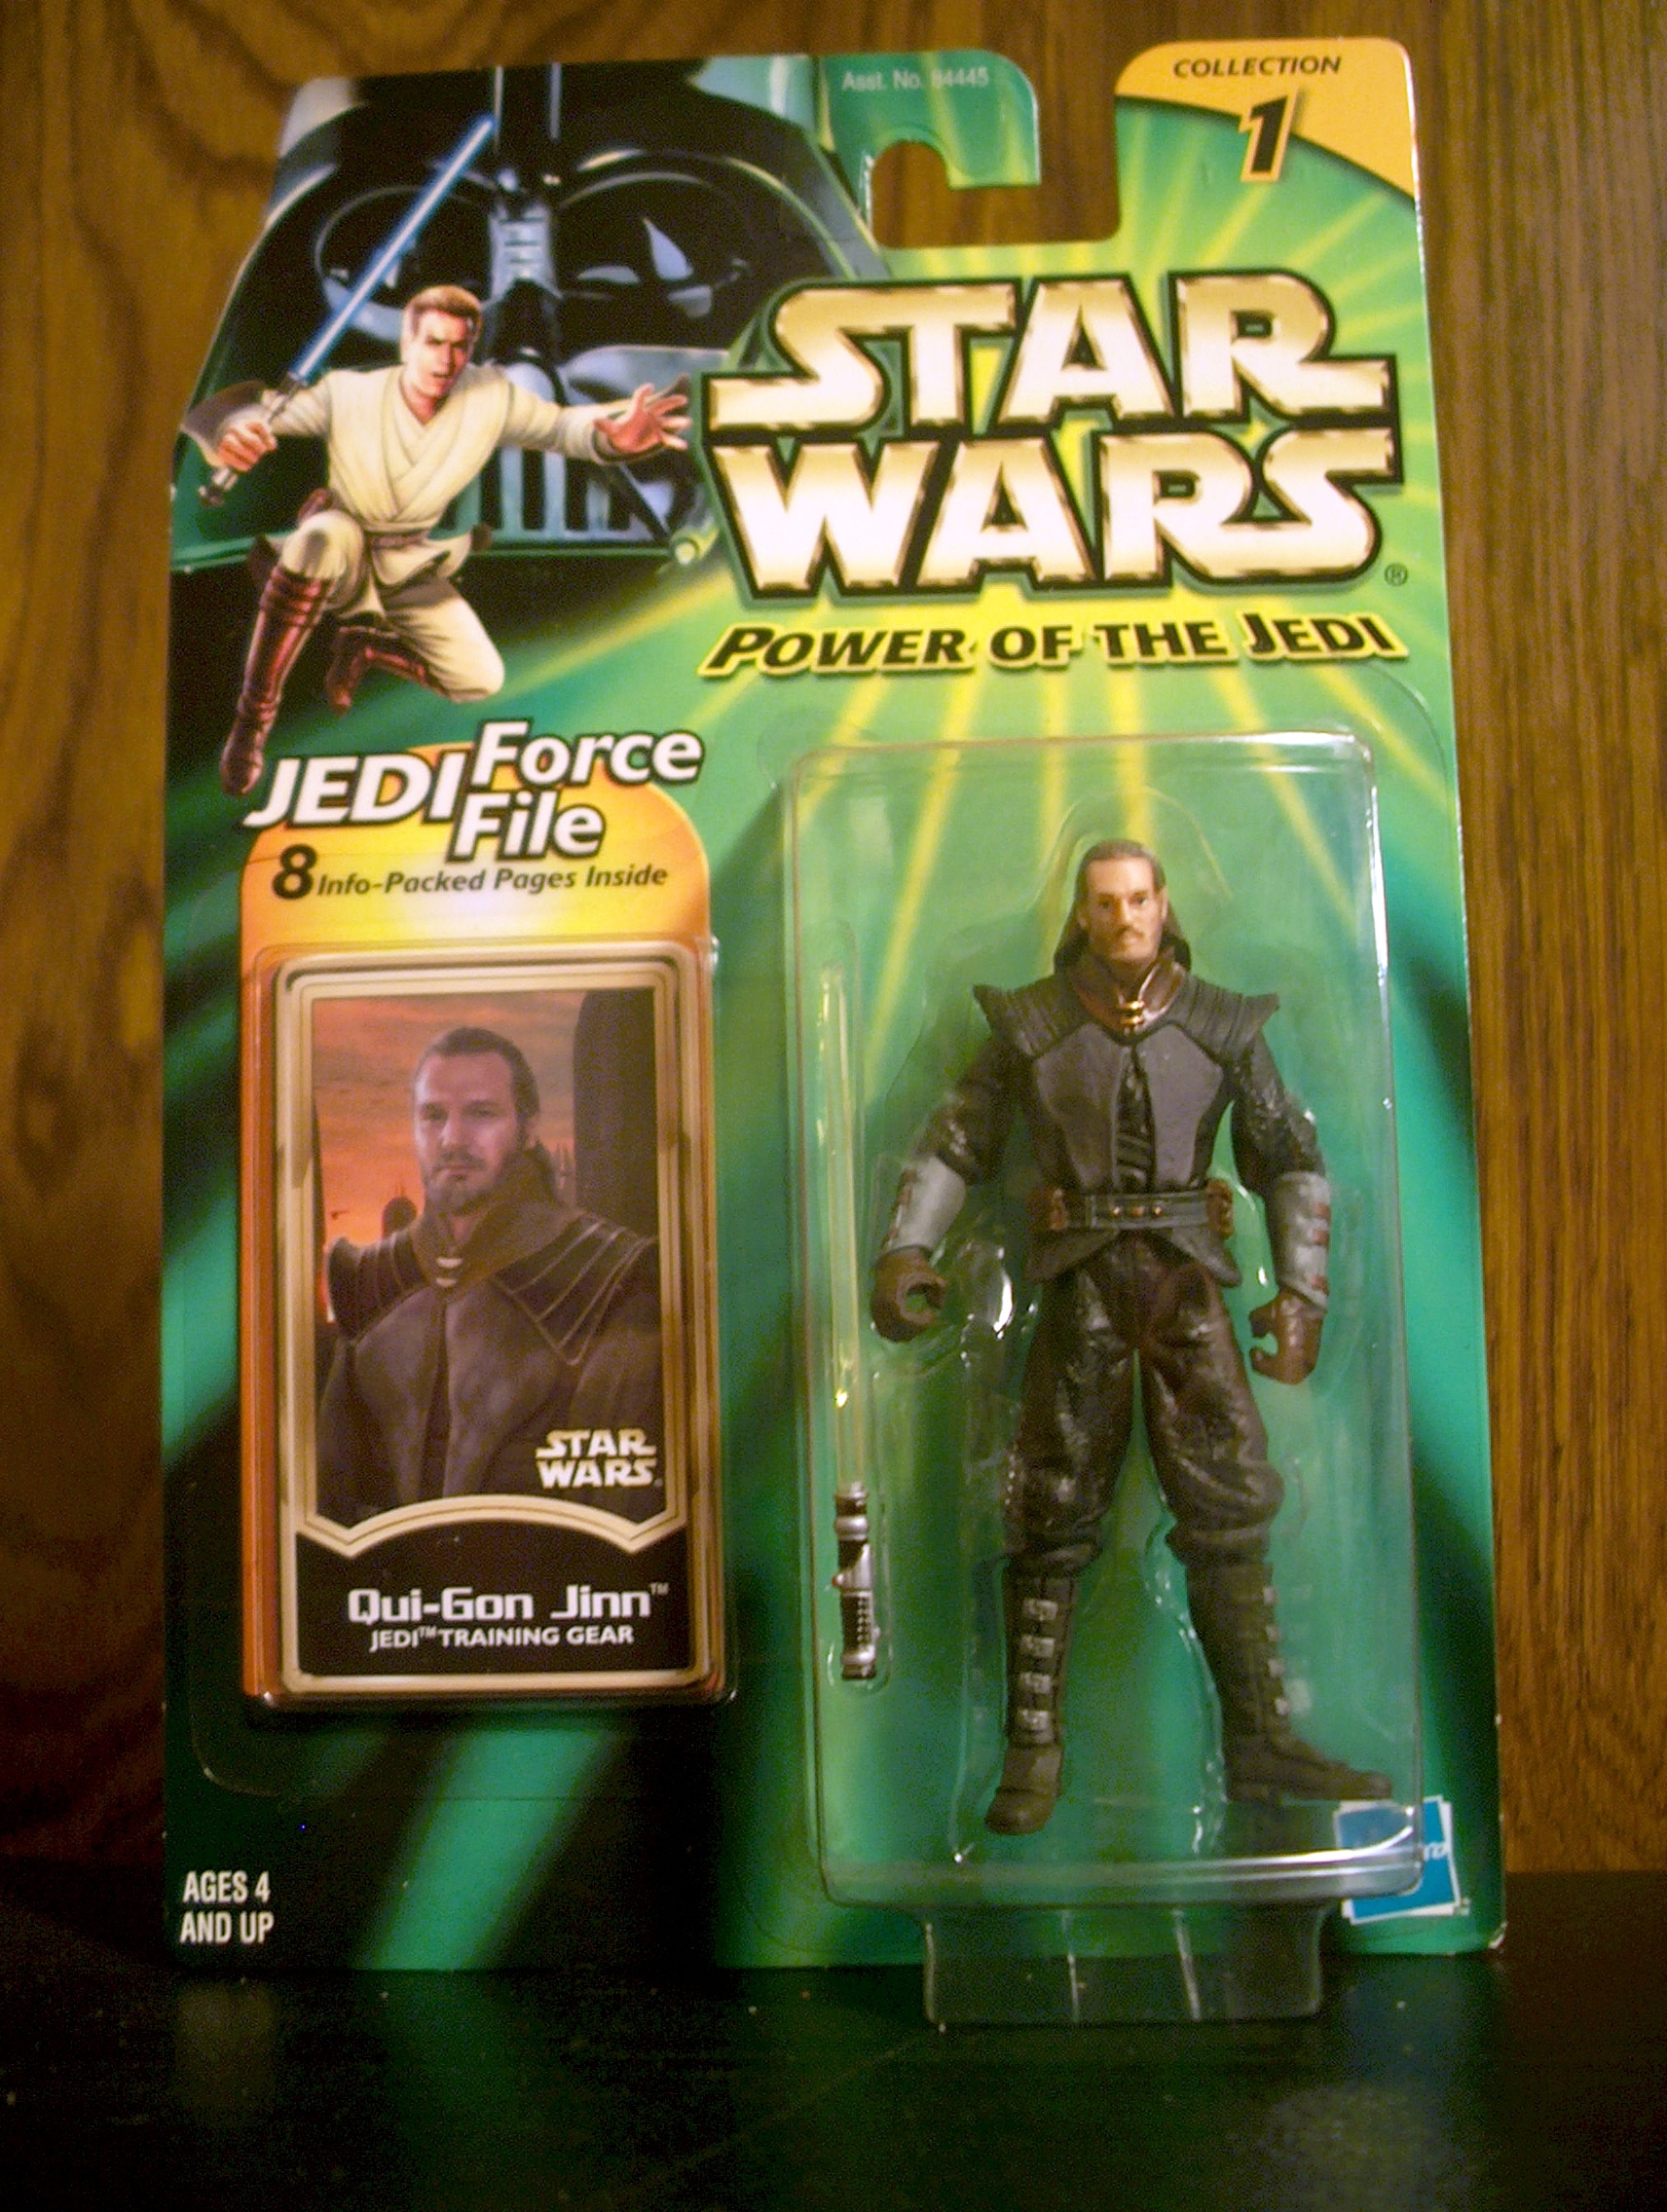 Qui-Gon Jinn - Jedi Training Gear (.0400)